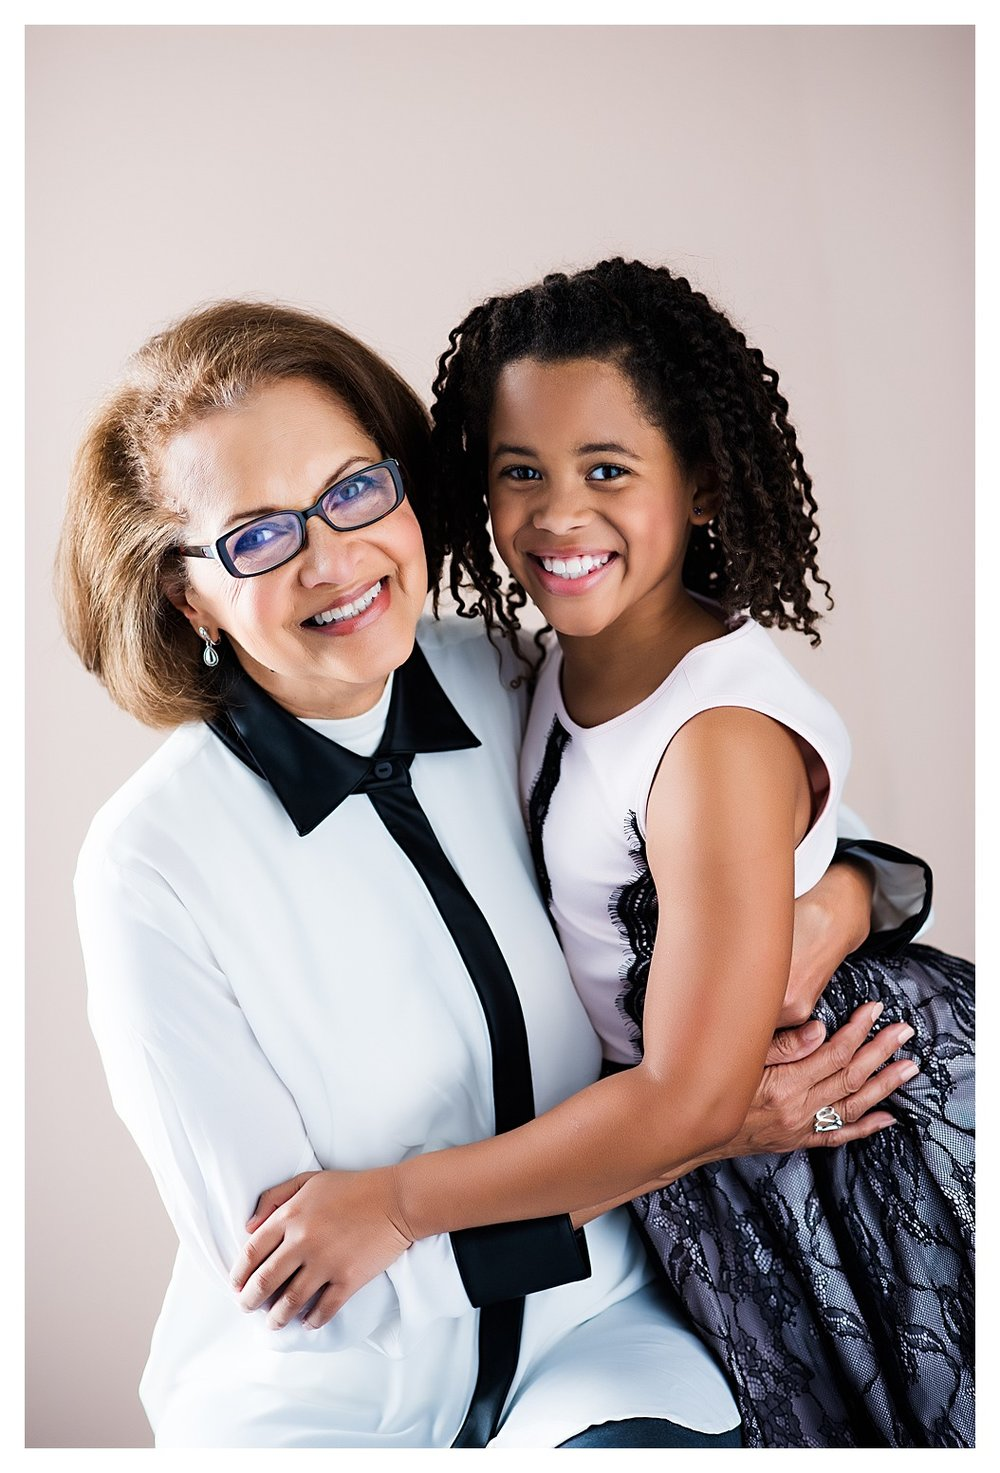 Tessa_marie_photography_mother_daughter_womens_portrait_family_photography_atlanta_0115.jpg